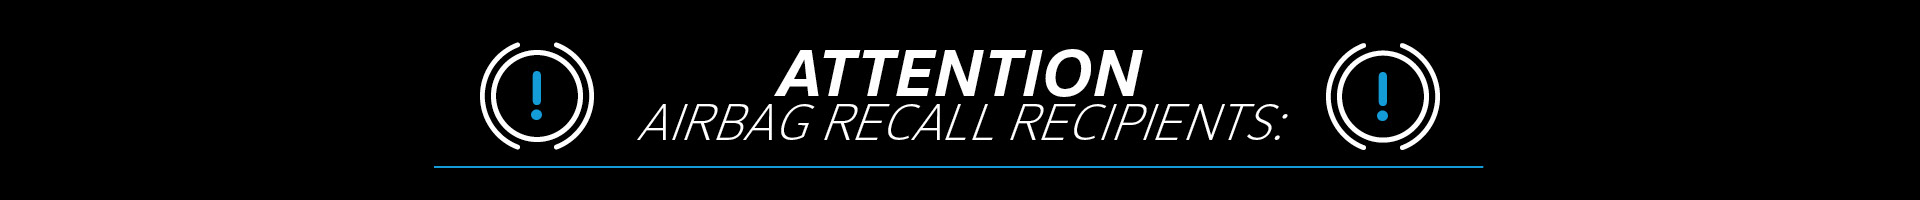 Attention Airbag Recall Recipients